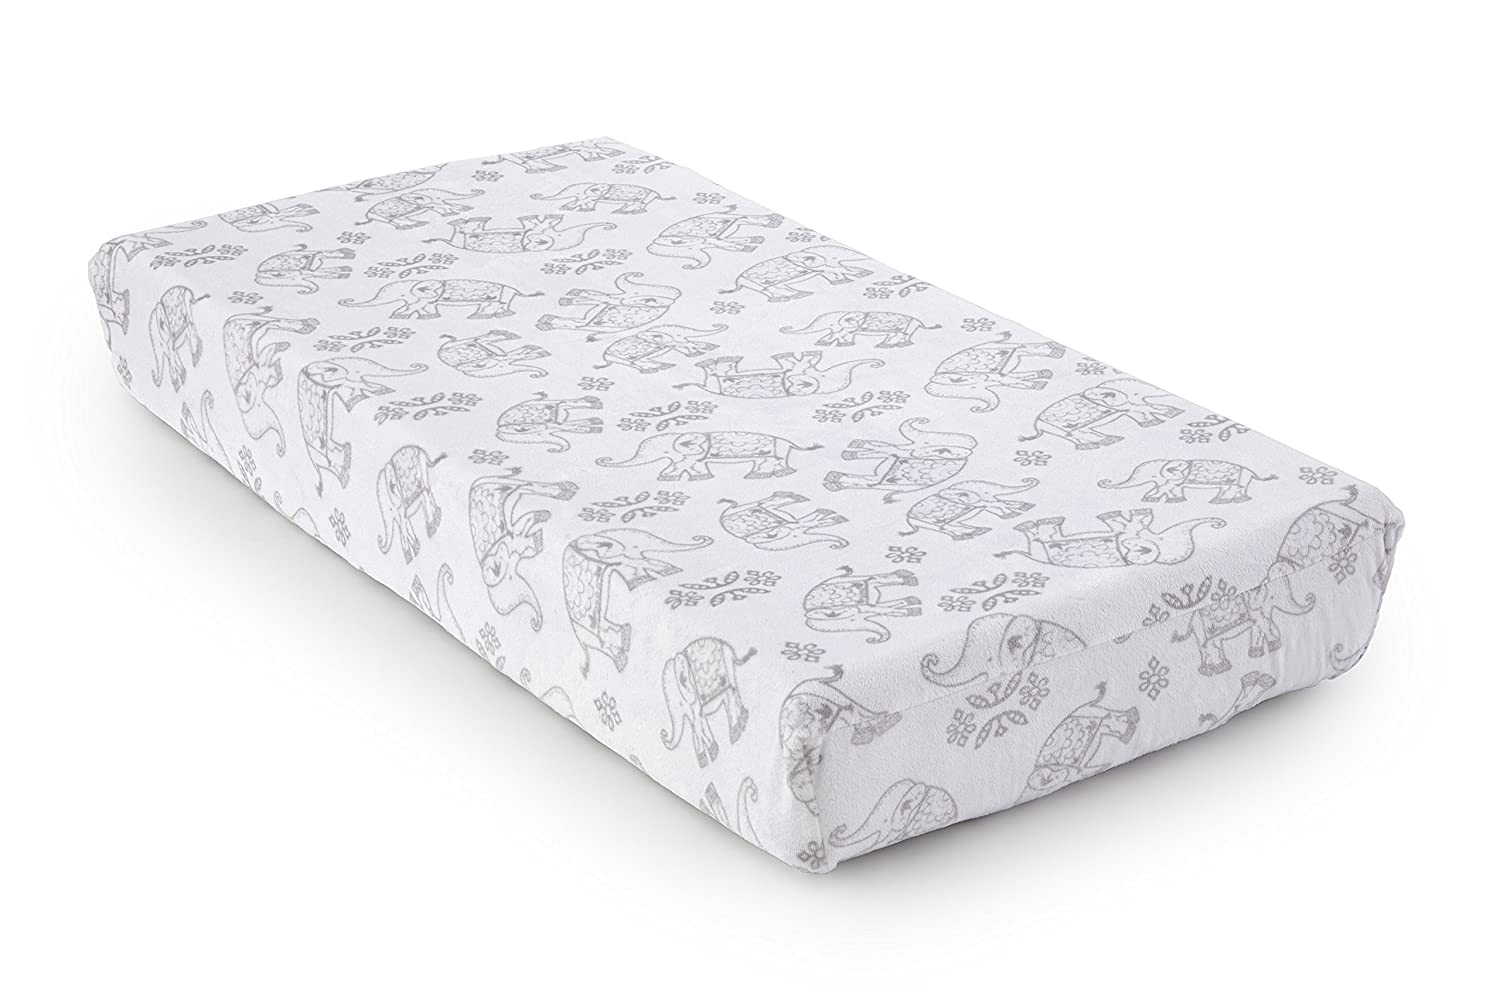 Levtex Home Baby Ely Changing Pad Cover, Grey